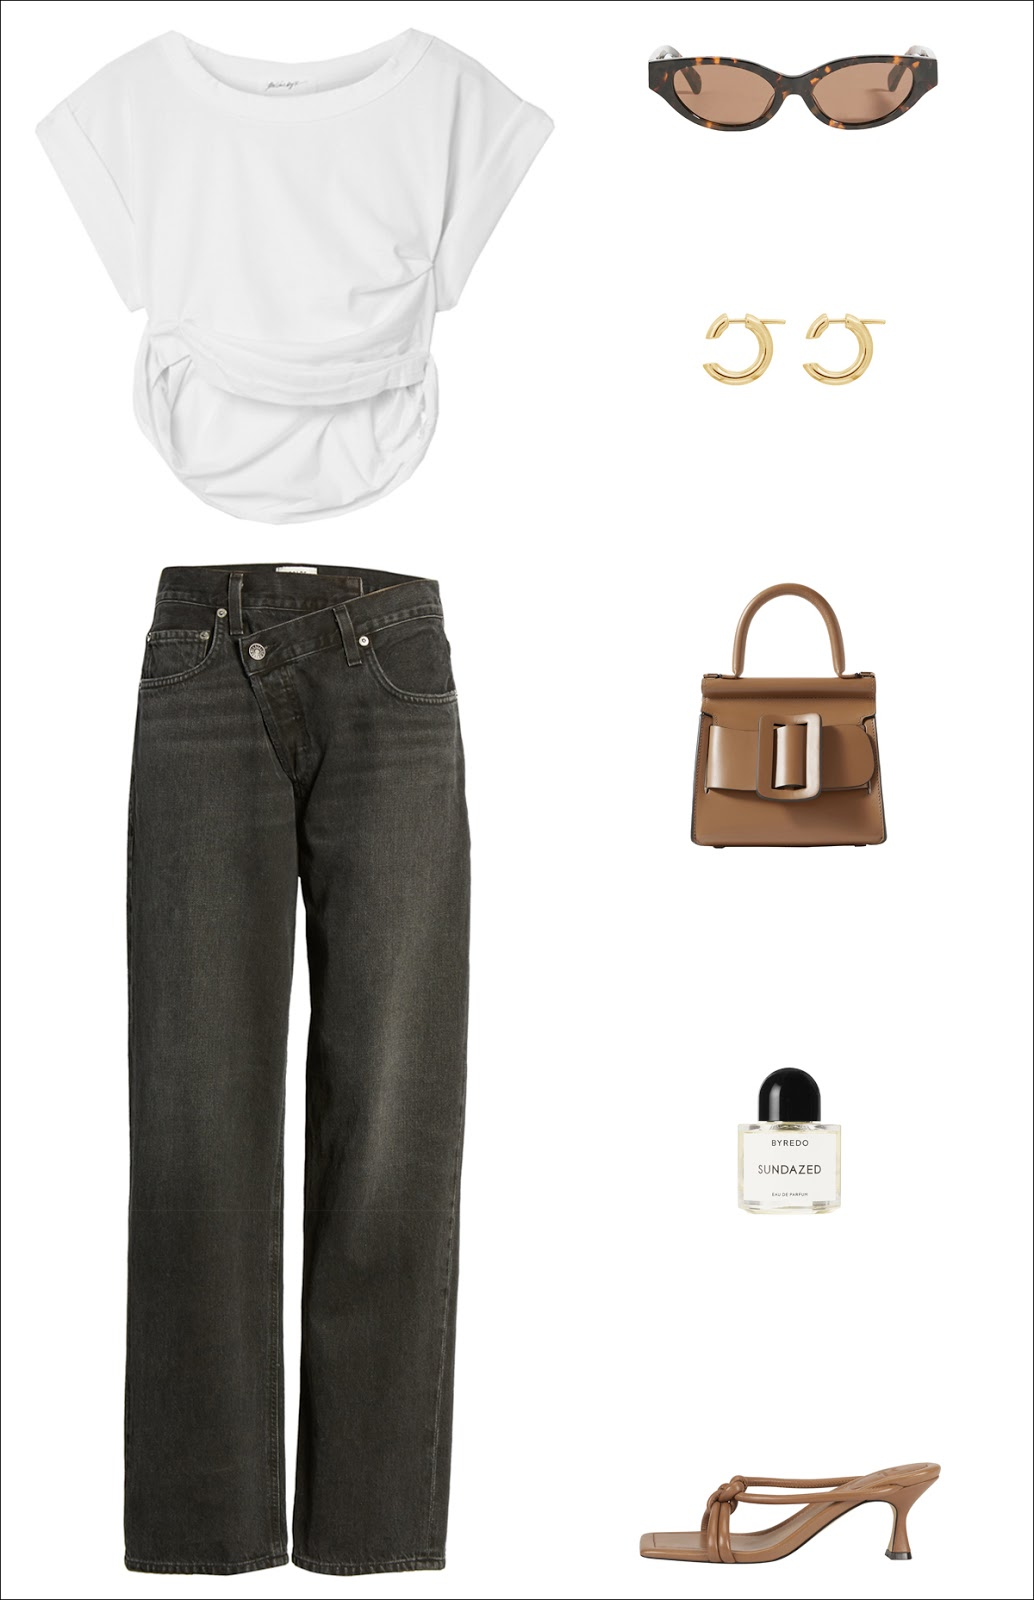 Cool Summer Outfit Idea — Cropped White T-Shirt, Cat-Eye Sunglasses, Edgy Hoop Earrings, Taupe Mini Bag, Criss-Cross Front Black Jeans, and Light Brown Heeled Slide Sandals